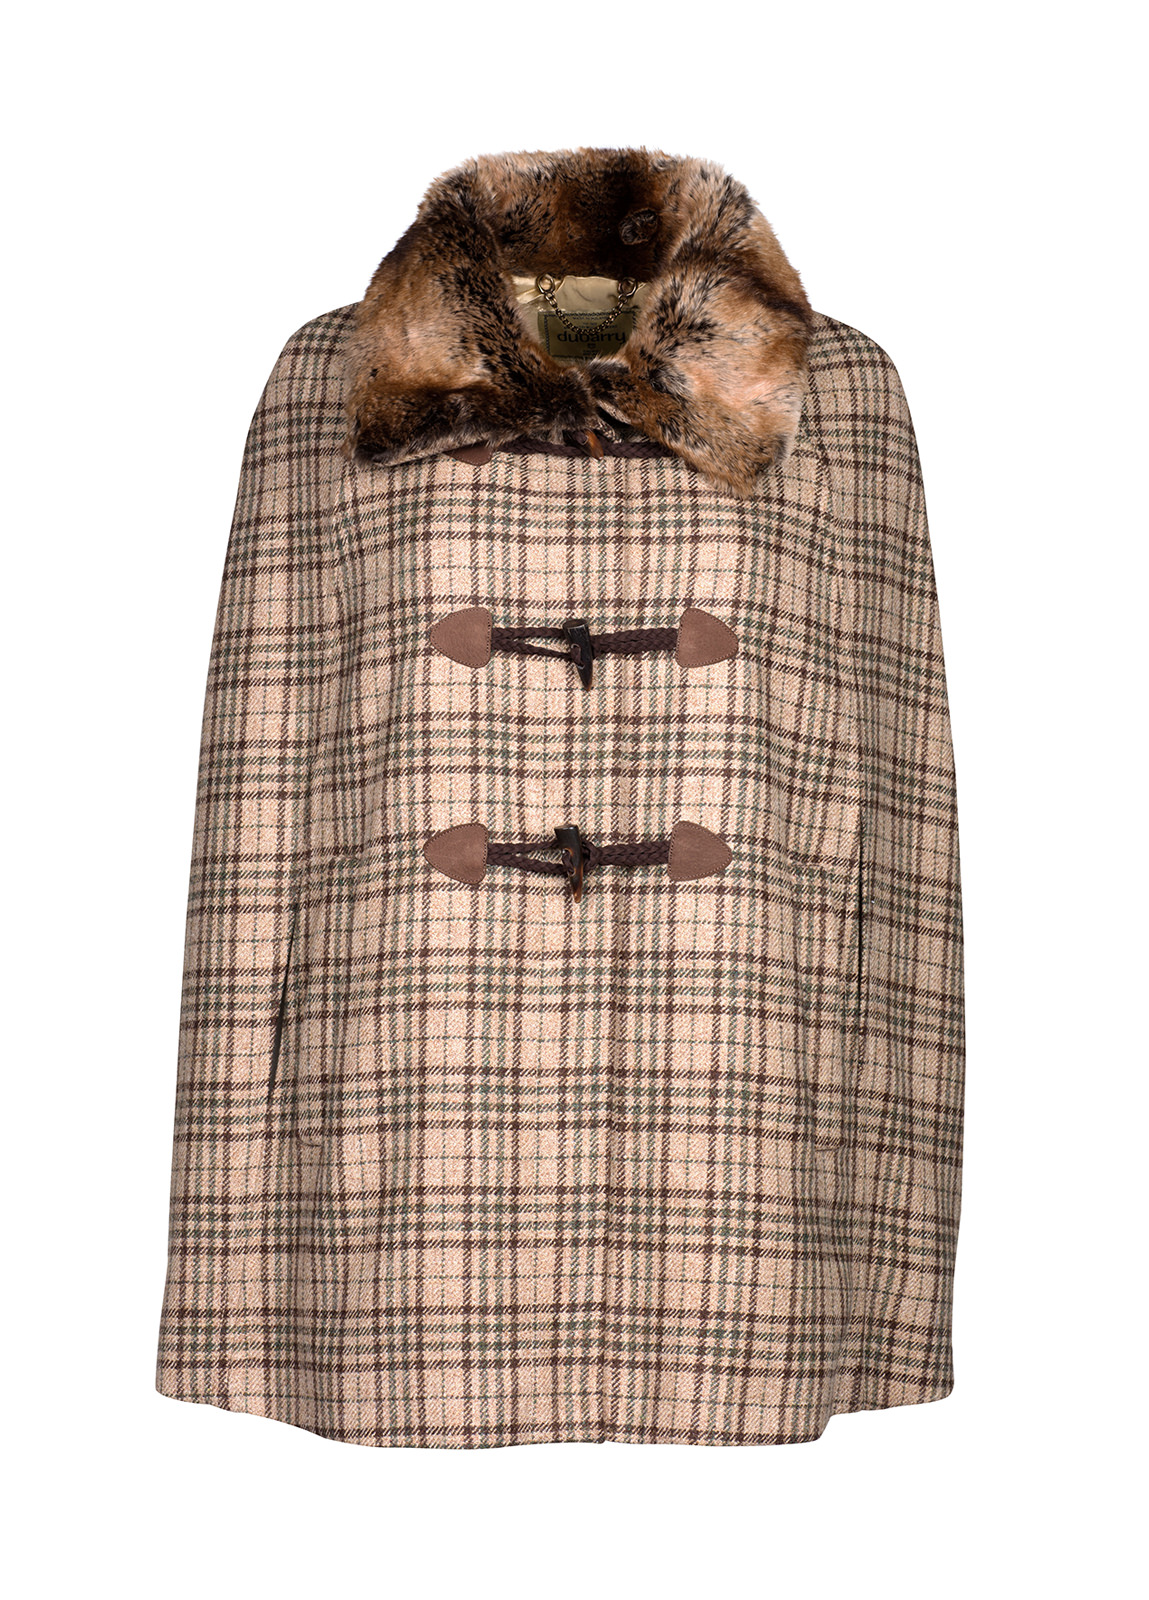 Dubarry_ Samphire Tweed Cape - Pebble_Image_2